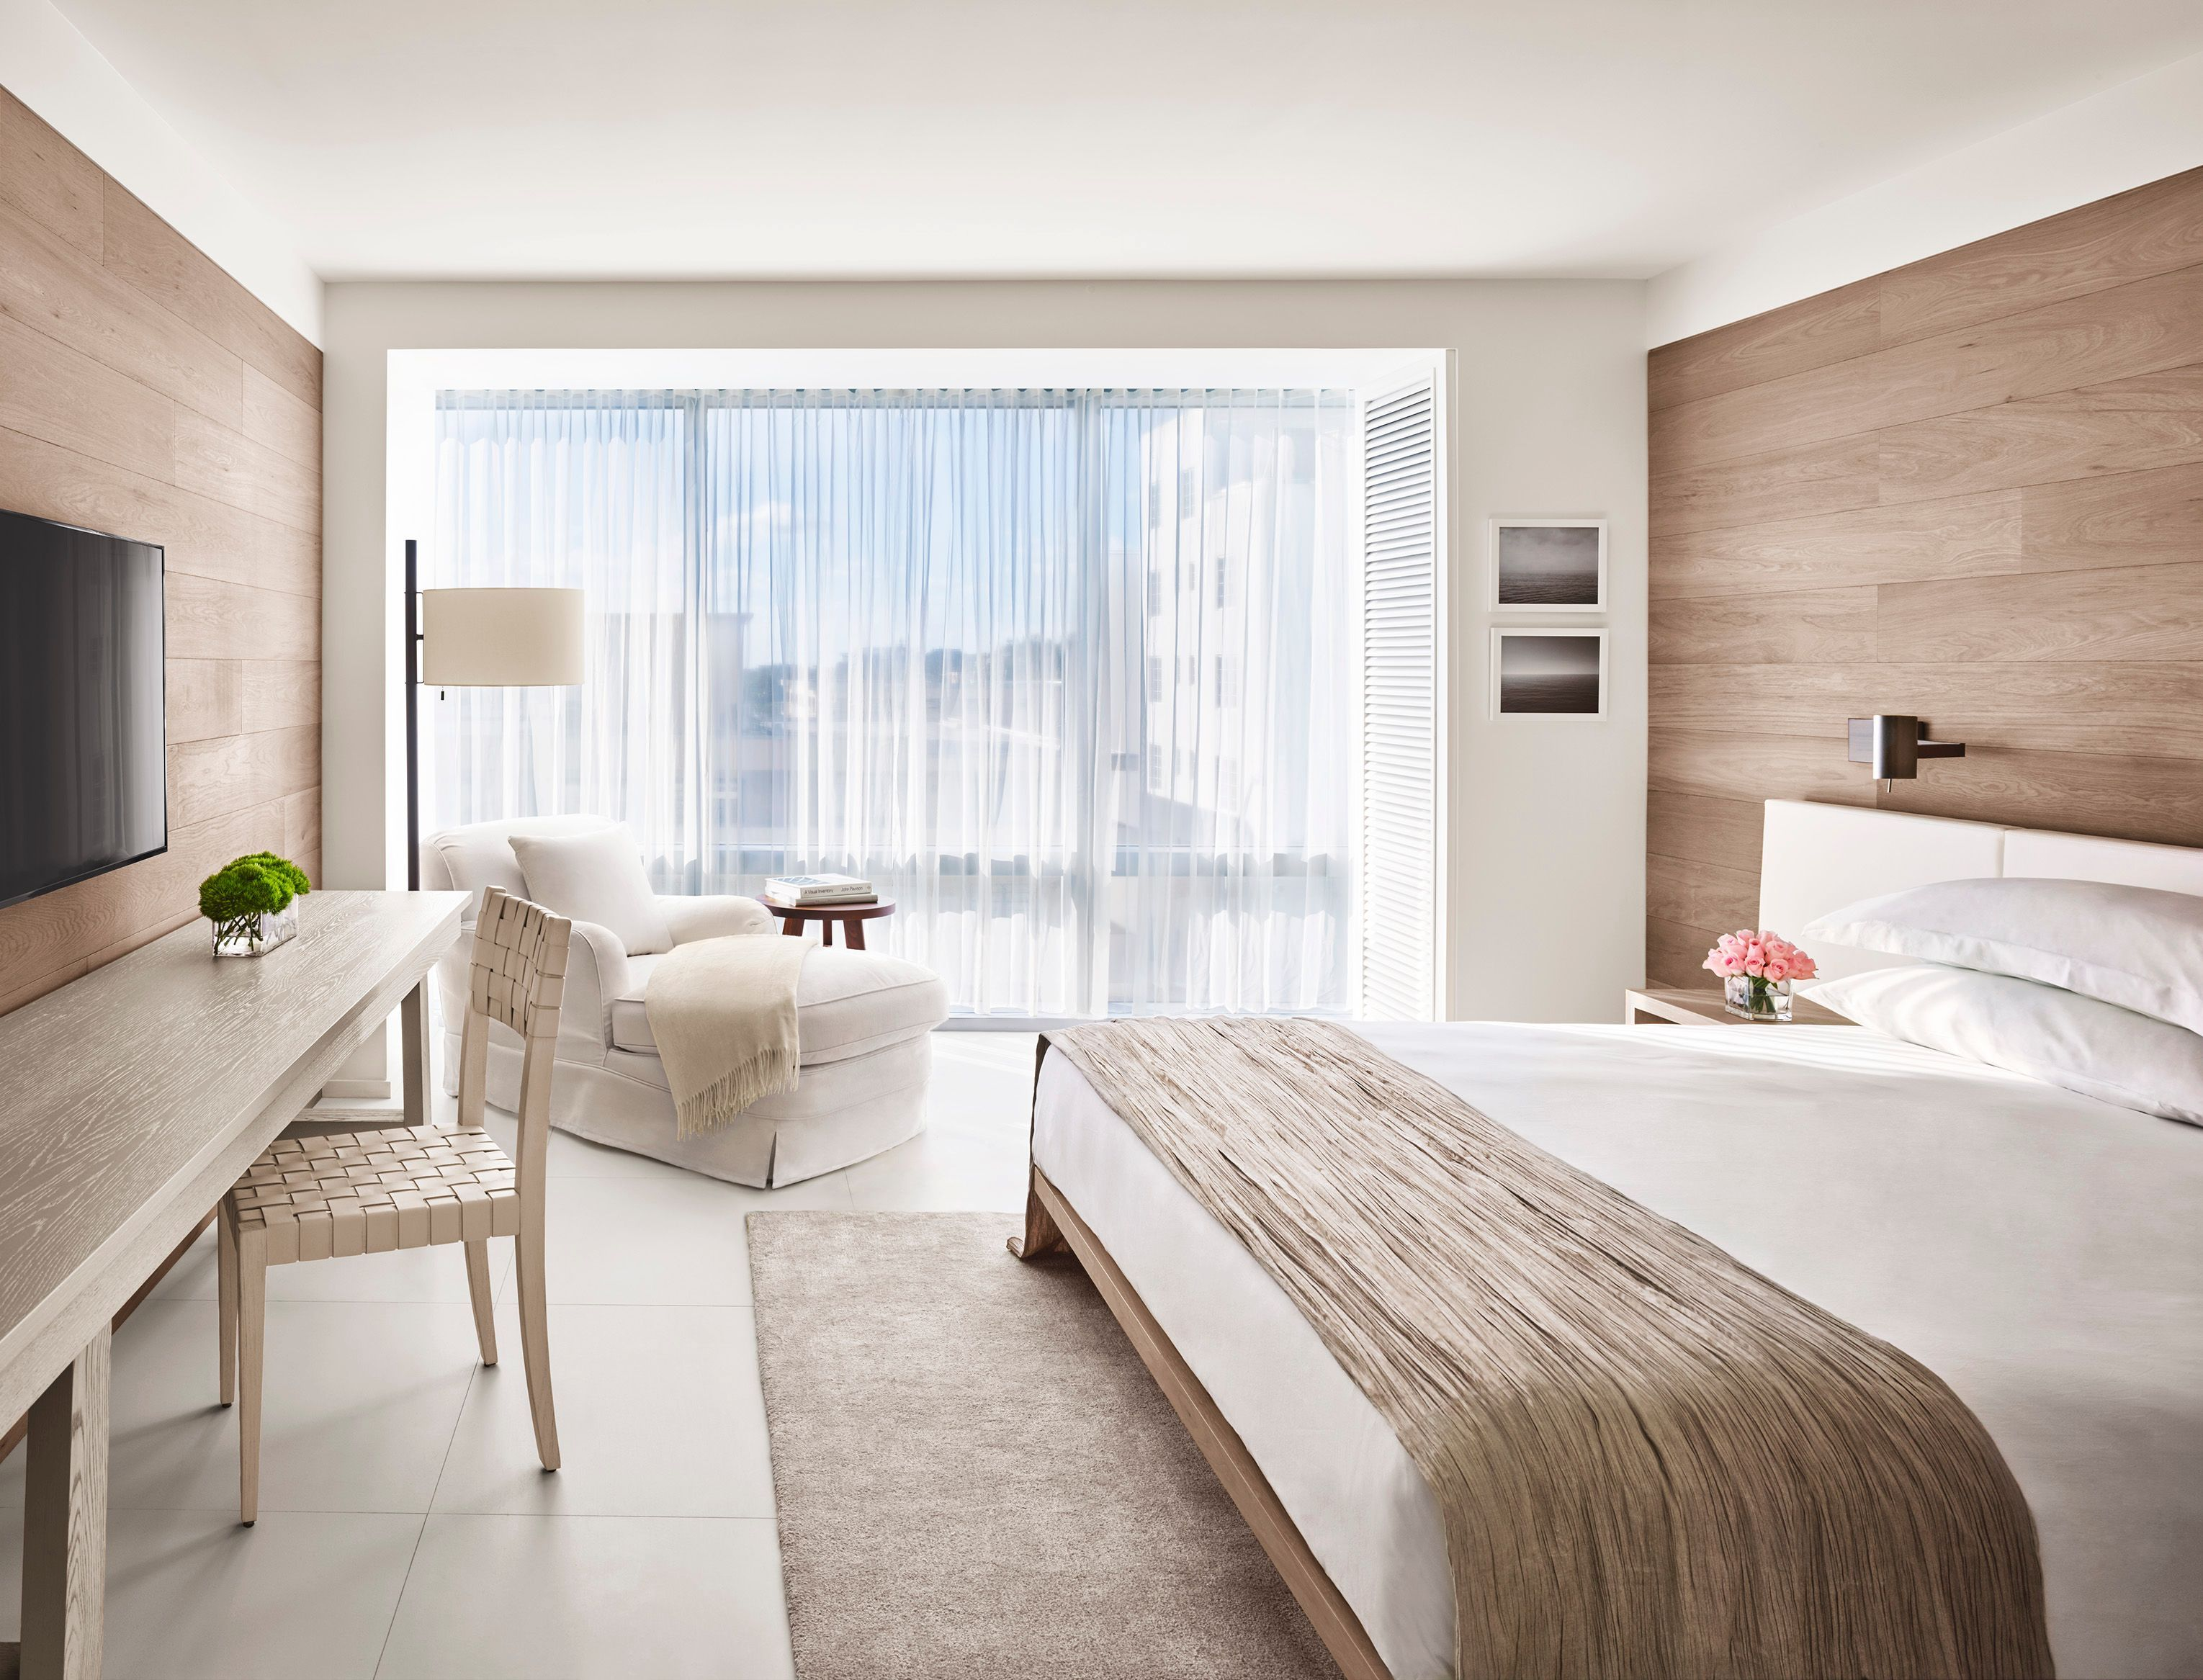 Yabu pushelberg the miami beach edition bedroom luxury for Luxury boutique resorts